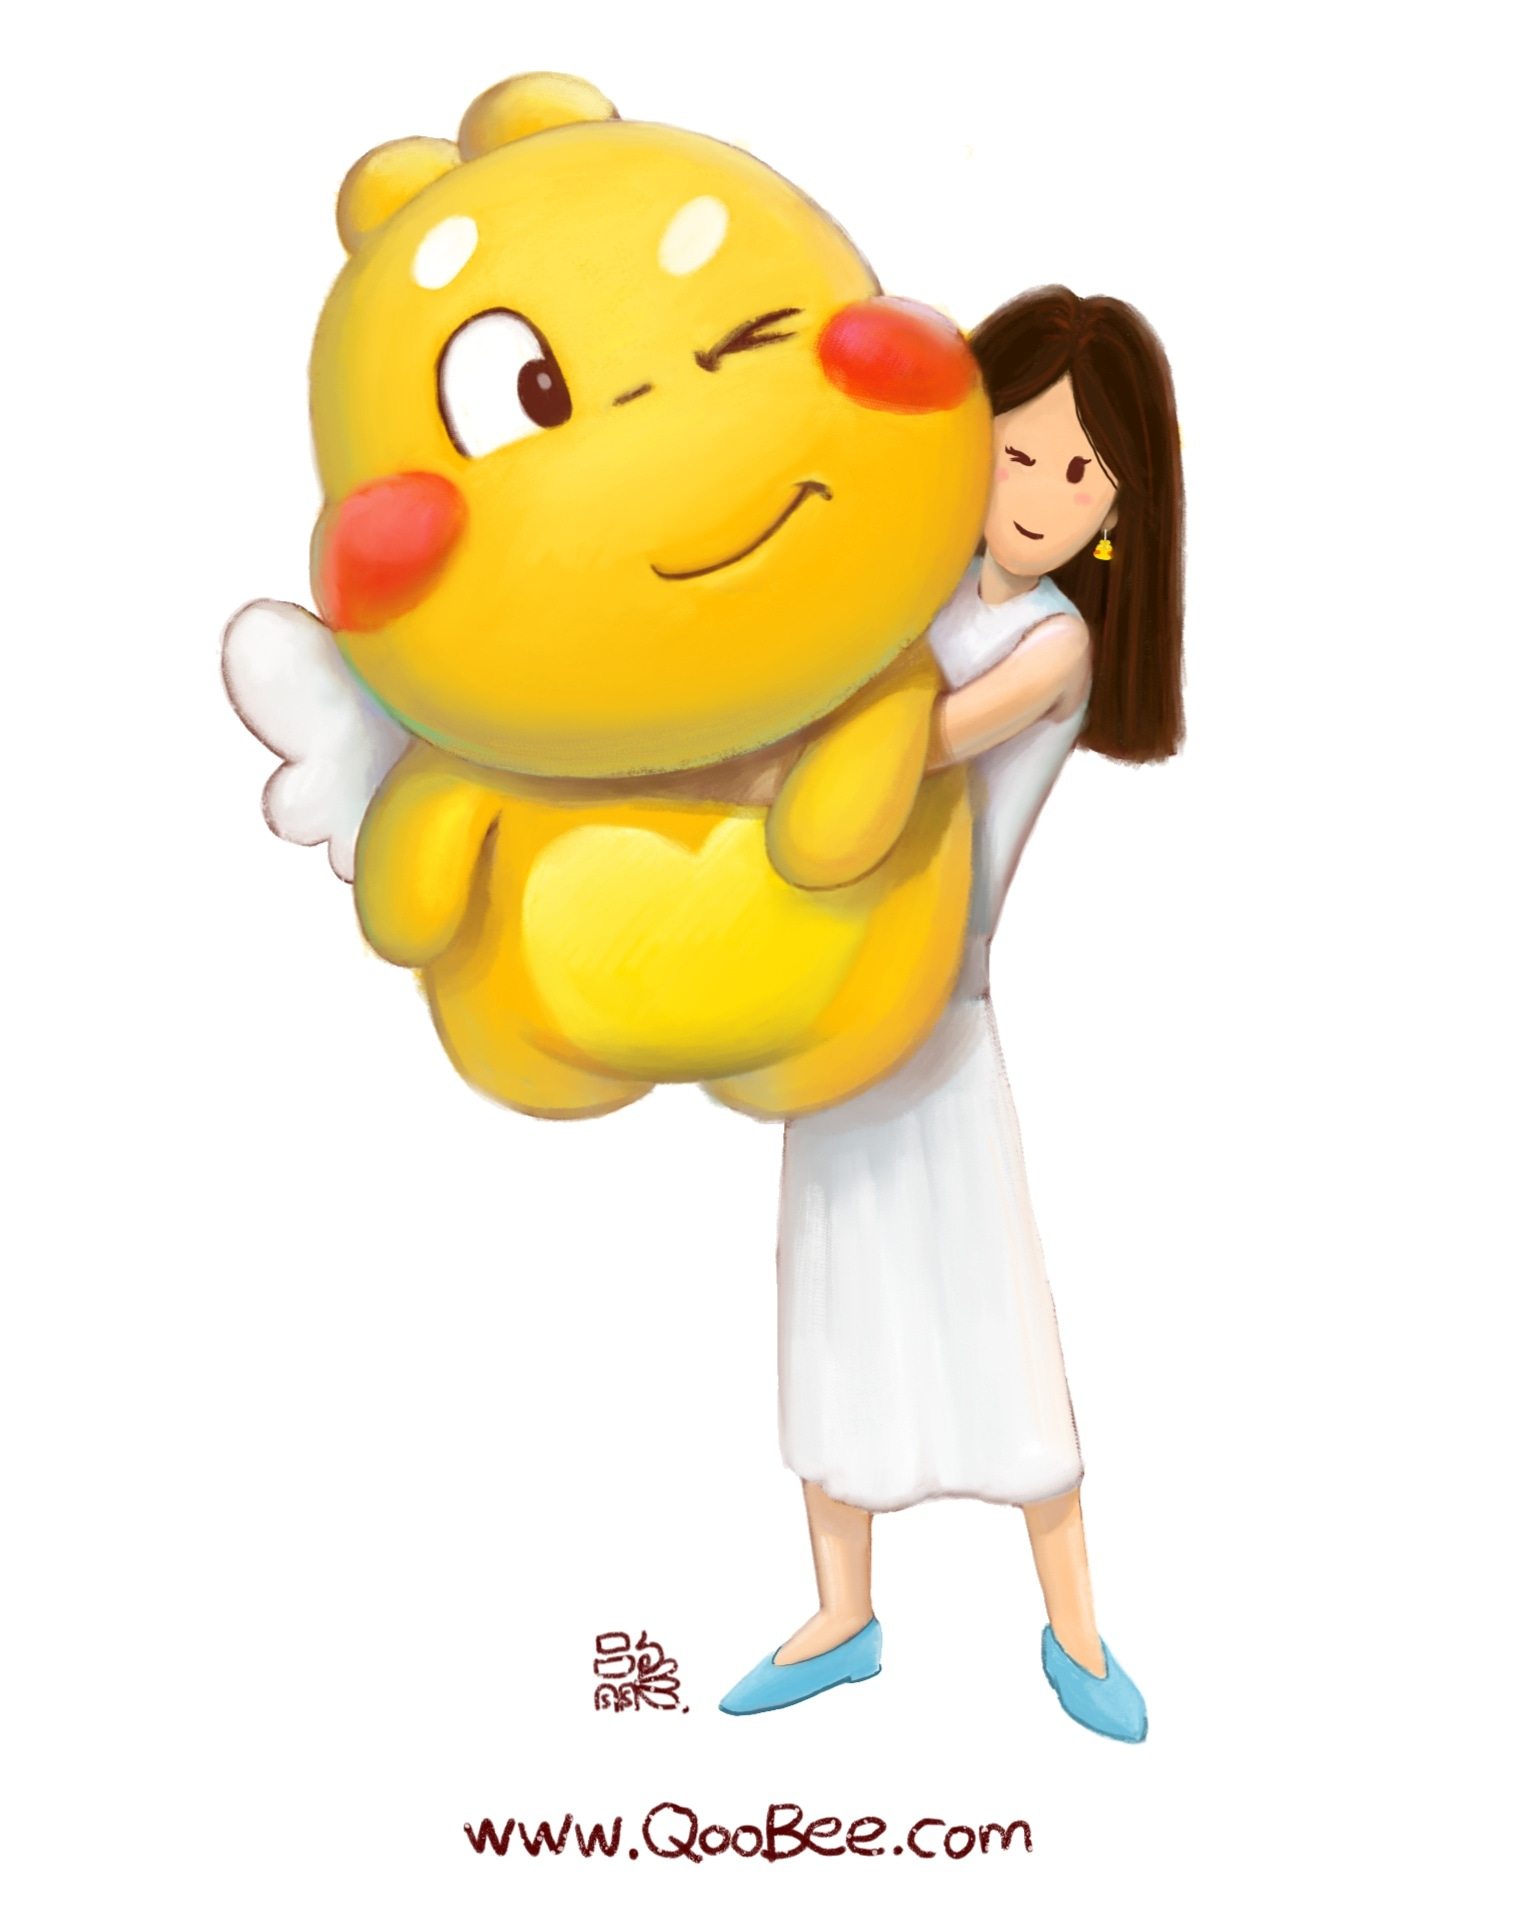 Giant Qoobee 60CM Stuffed Toy illustration